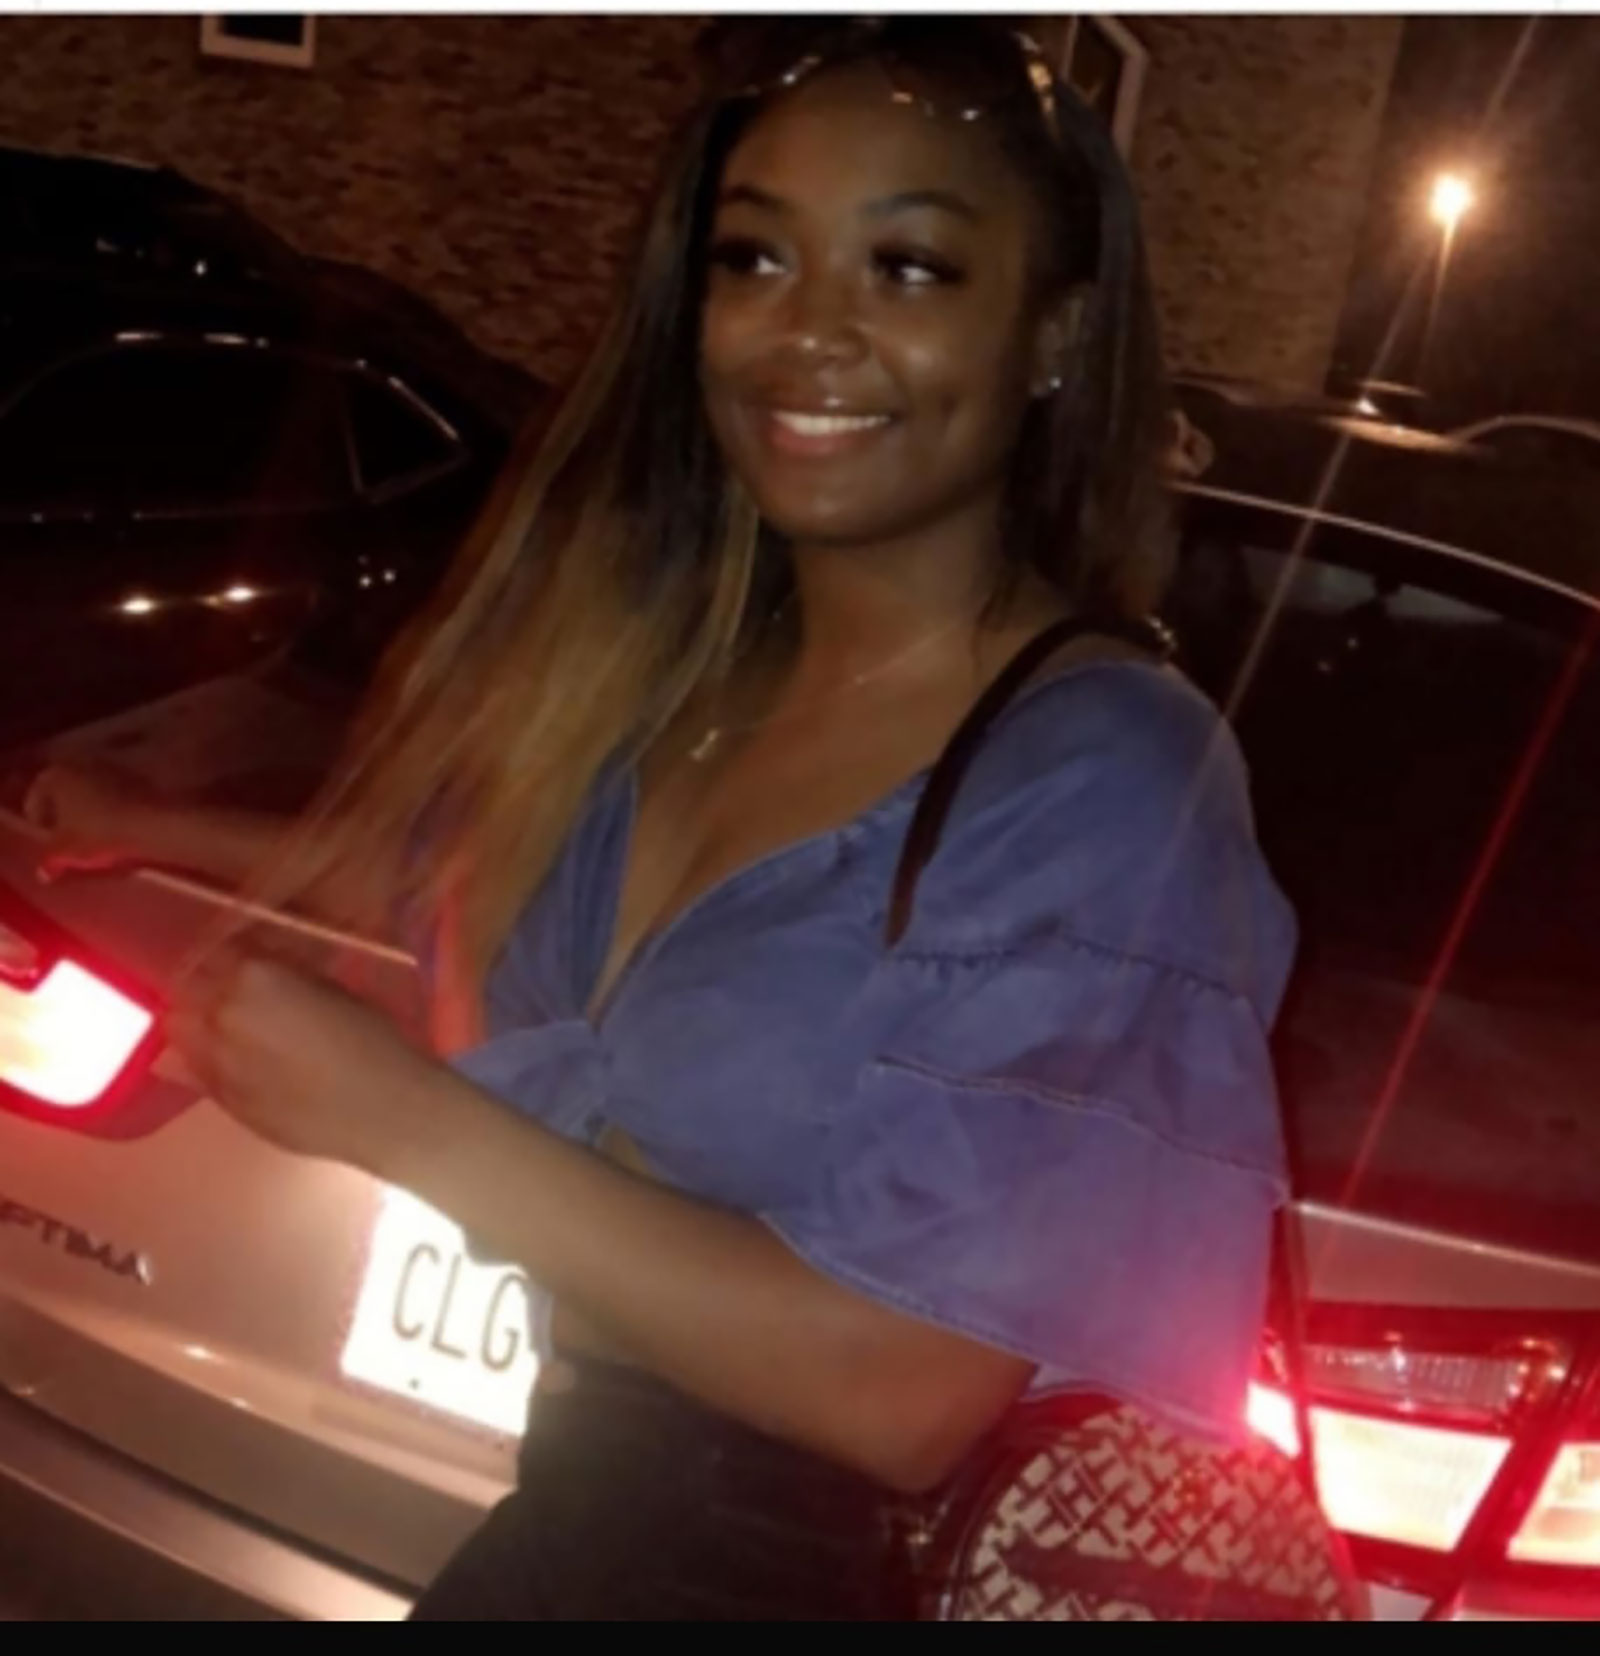 A Georgia college student has been missing since Valentine's Day